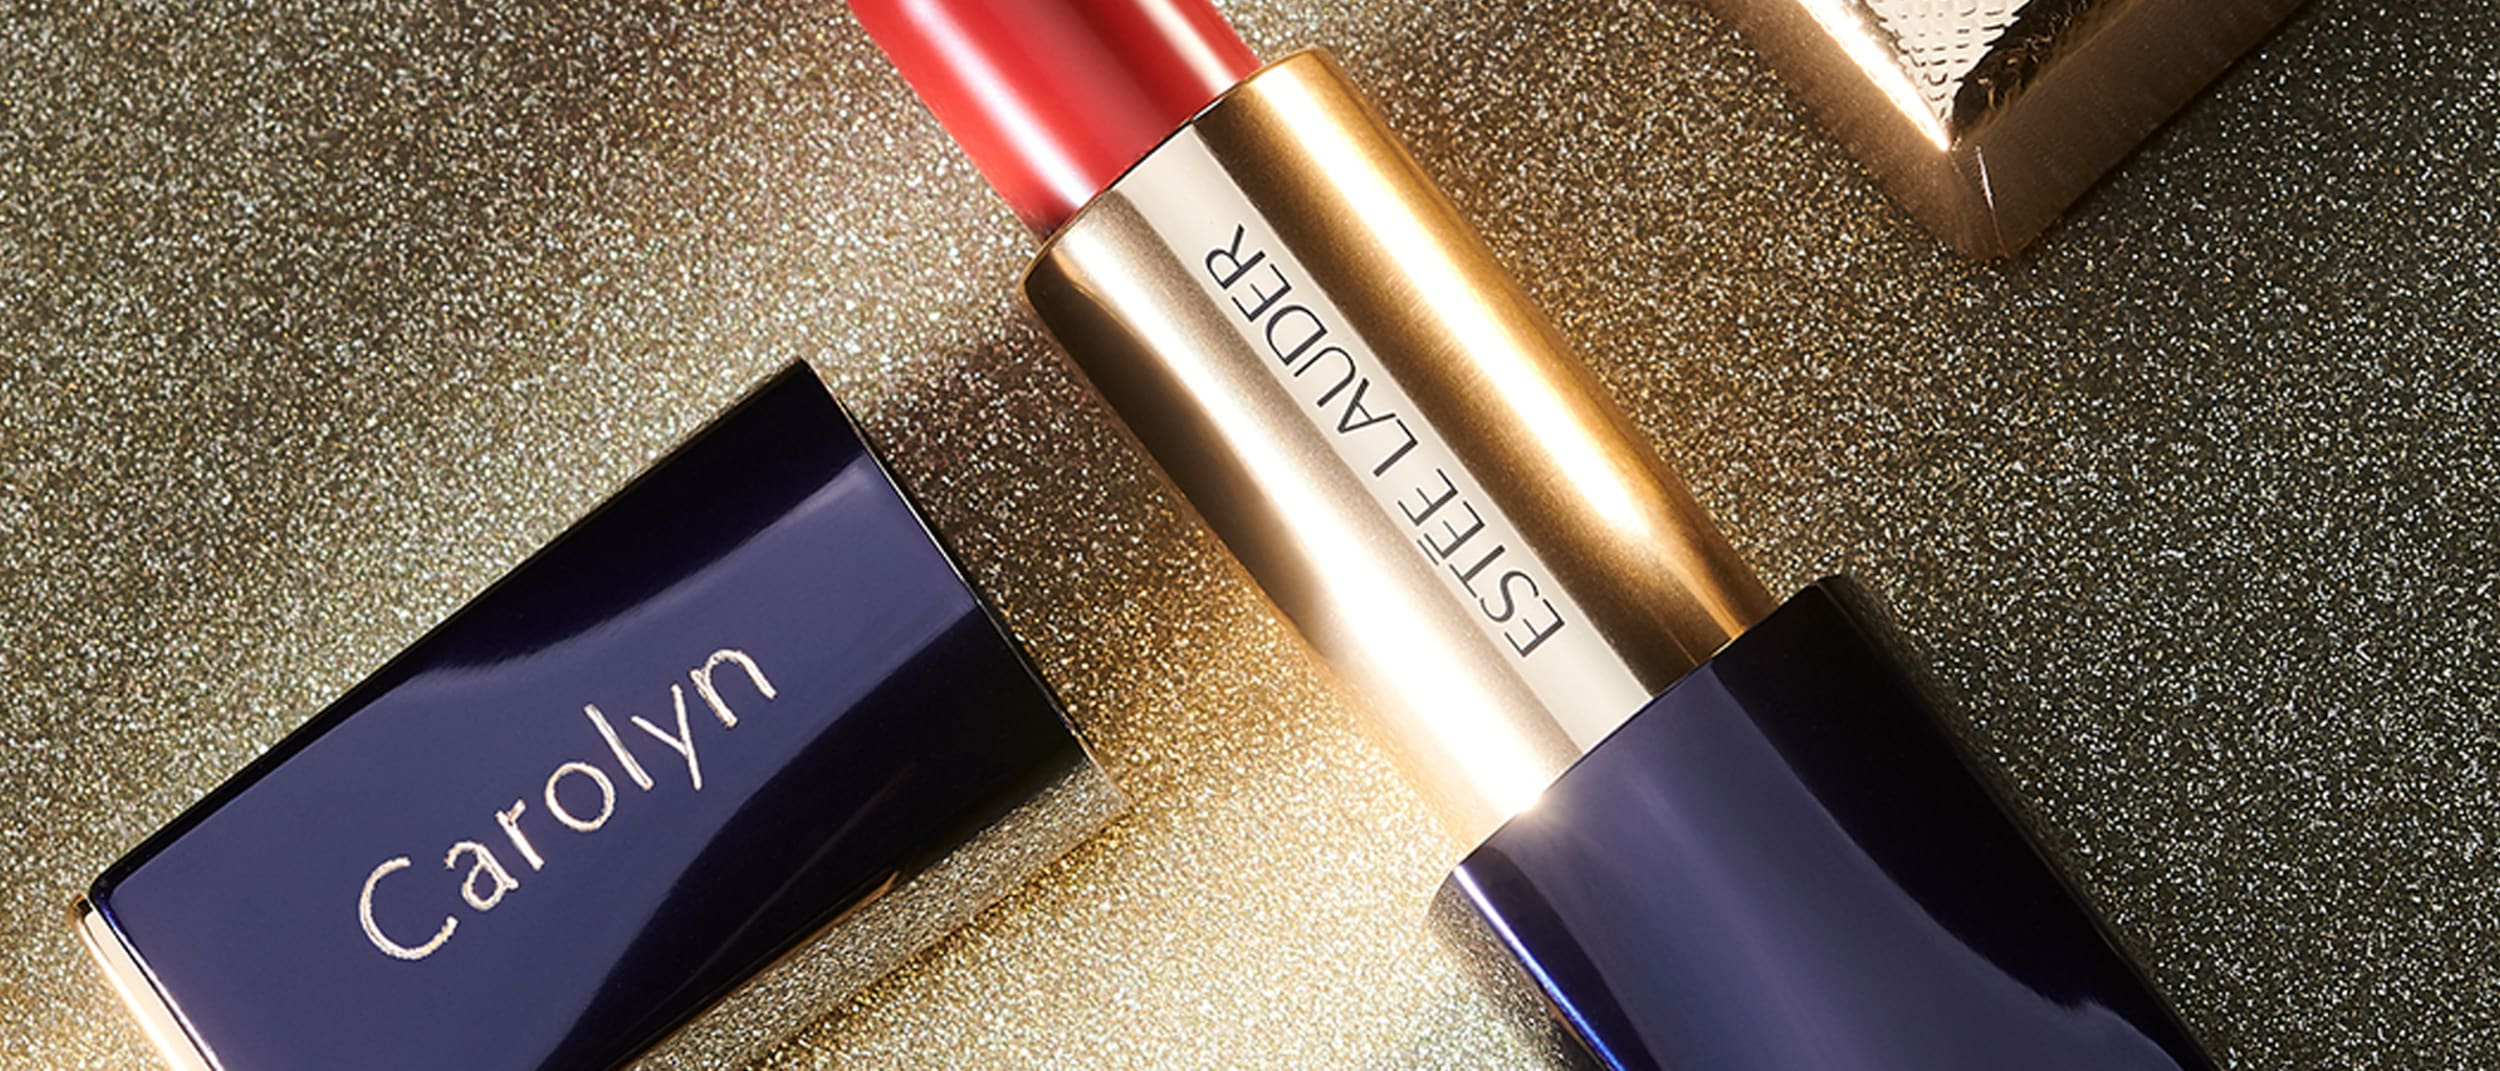 Farmers: Complimentary engraving with your Estee Lauder purchase*